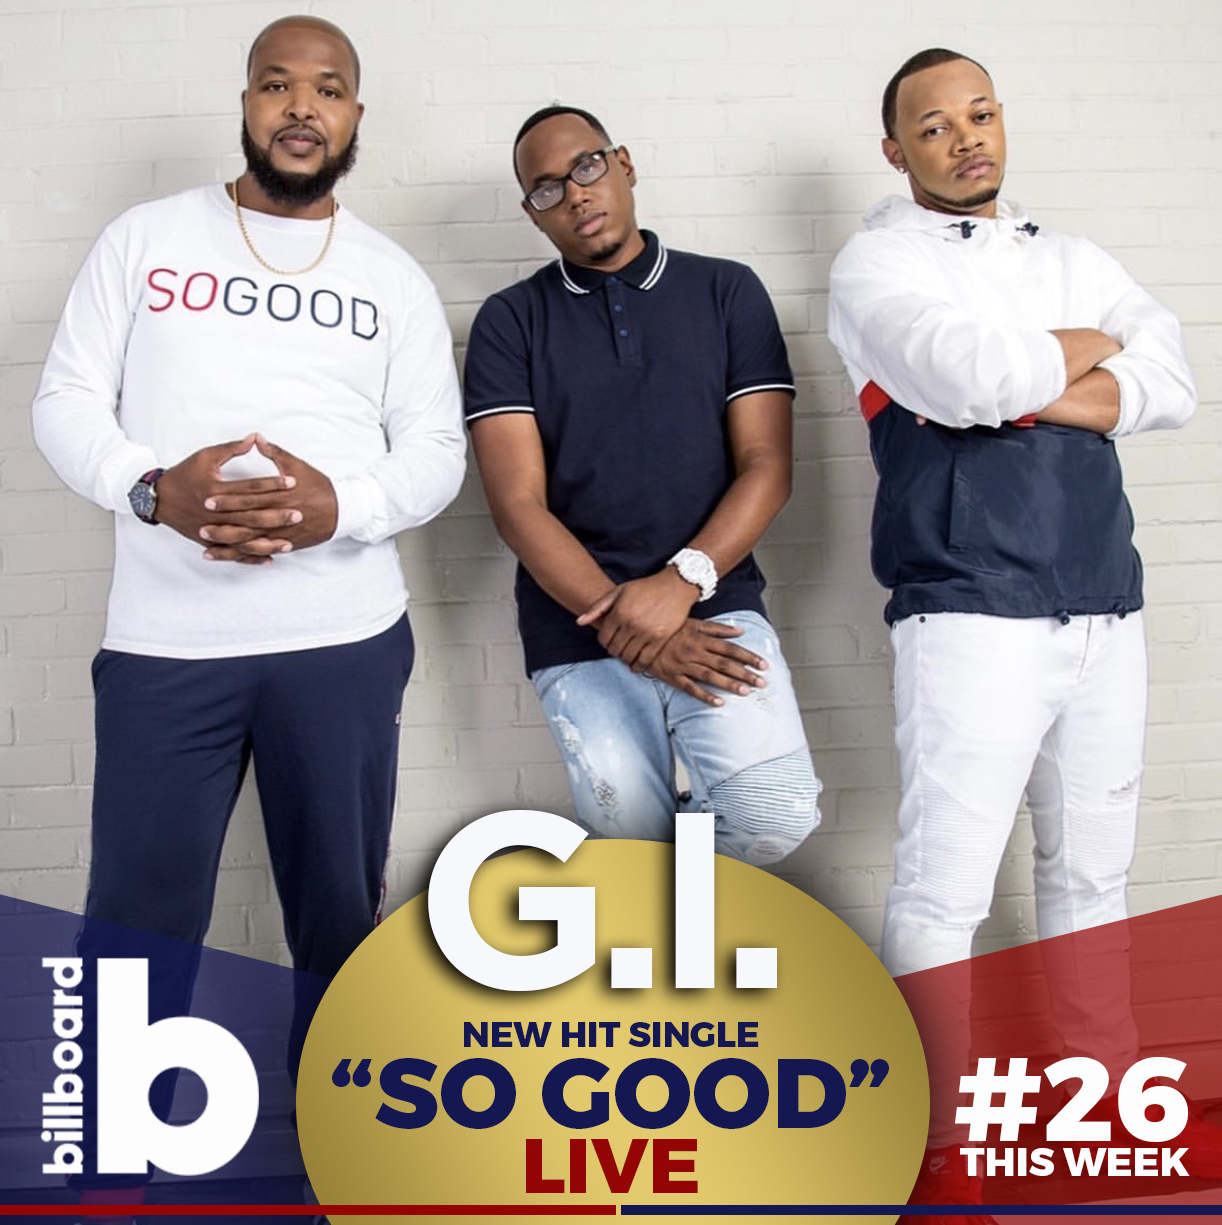 "G.I. Hits Top 30 on Billboard with Powerful New Anthem ""So Good Live"""